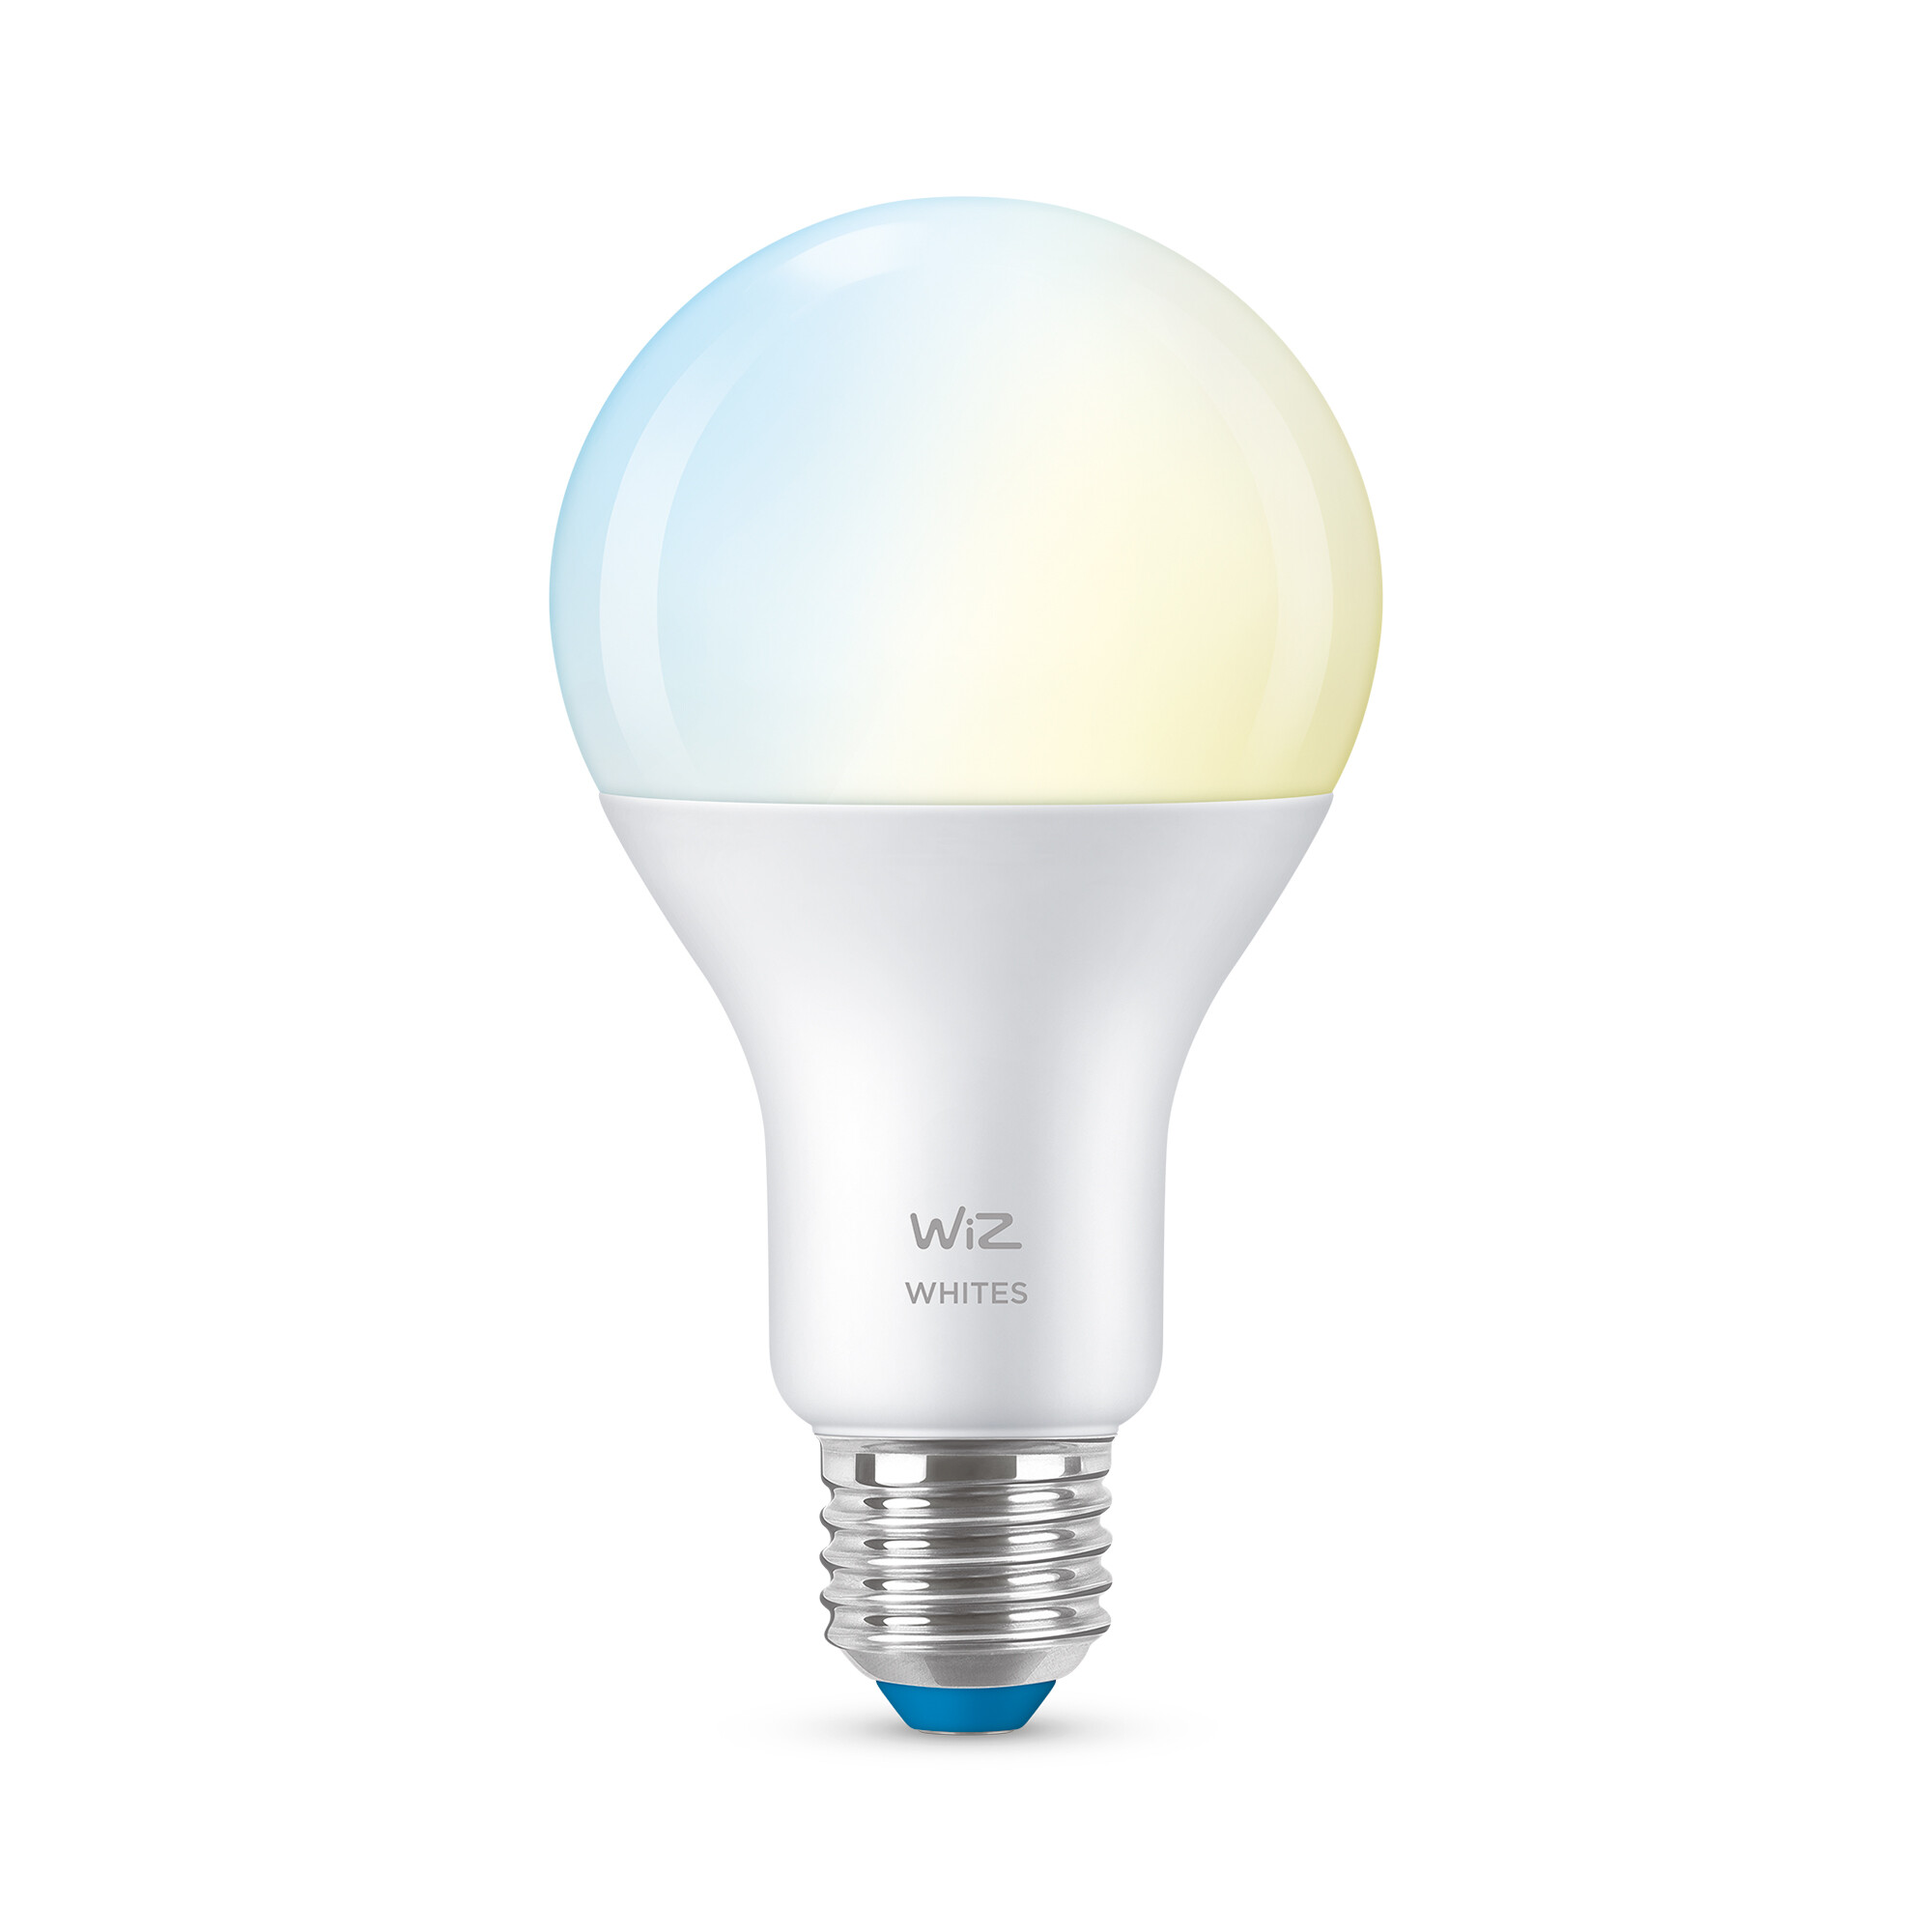 WiZ E27 100W 1521lm 2700K Lamp Frosted